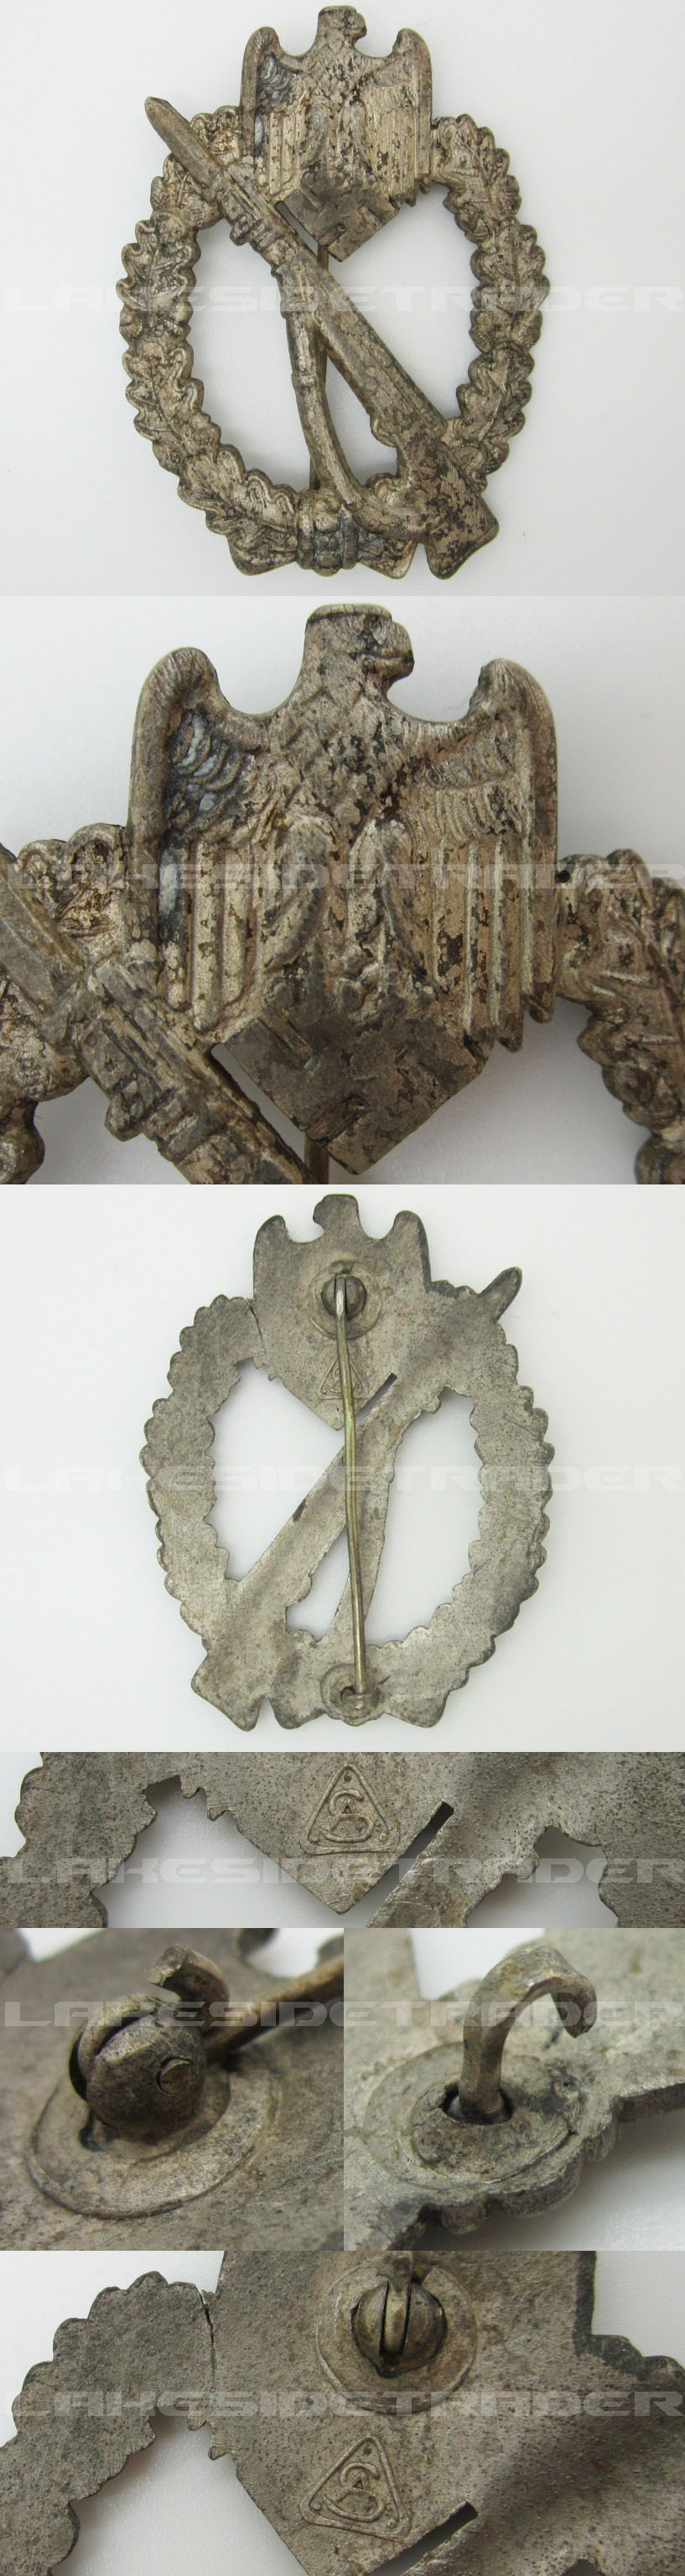 Silver Infantry Assault Badge by A.S.